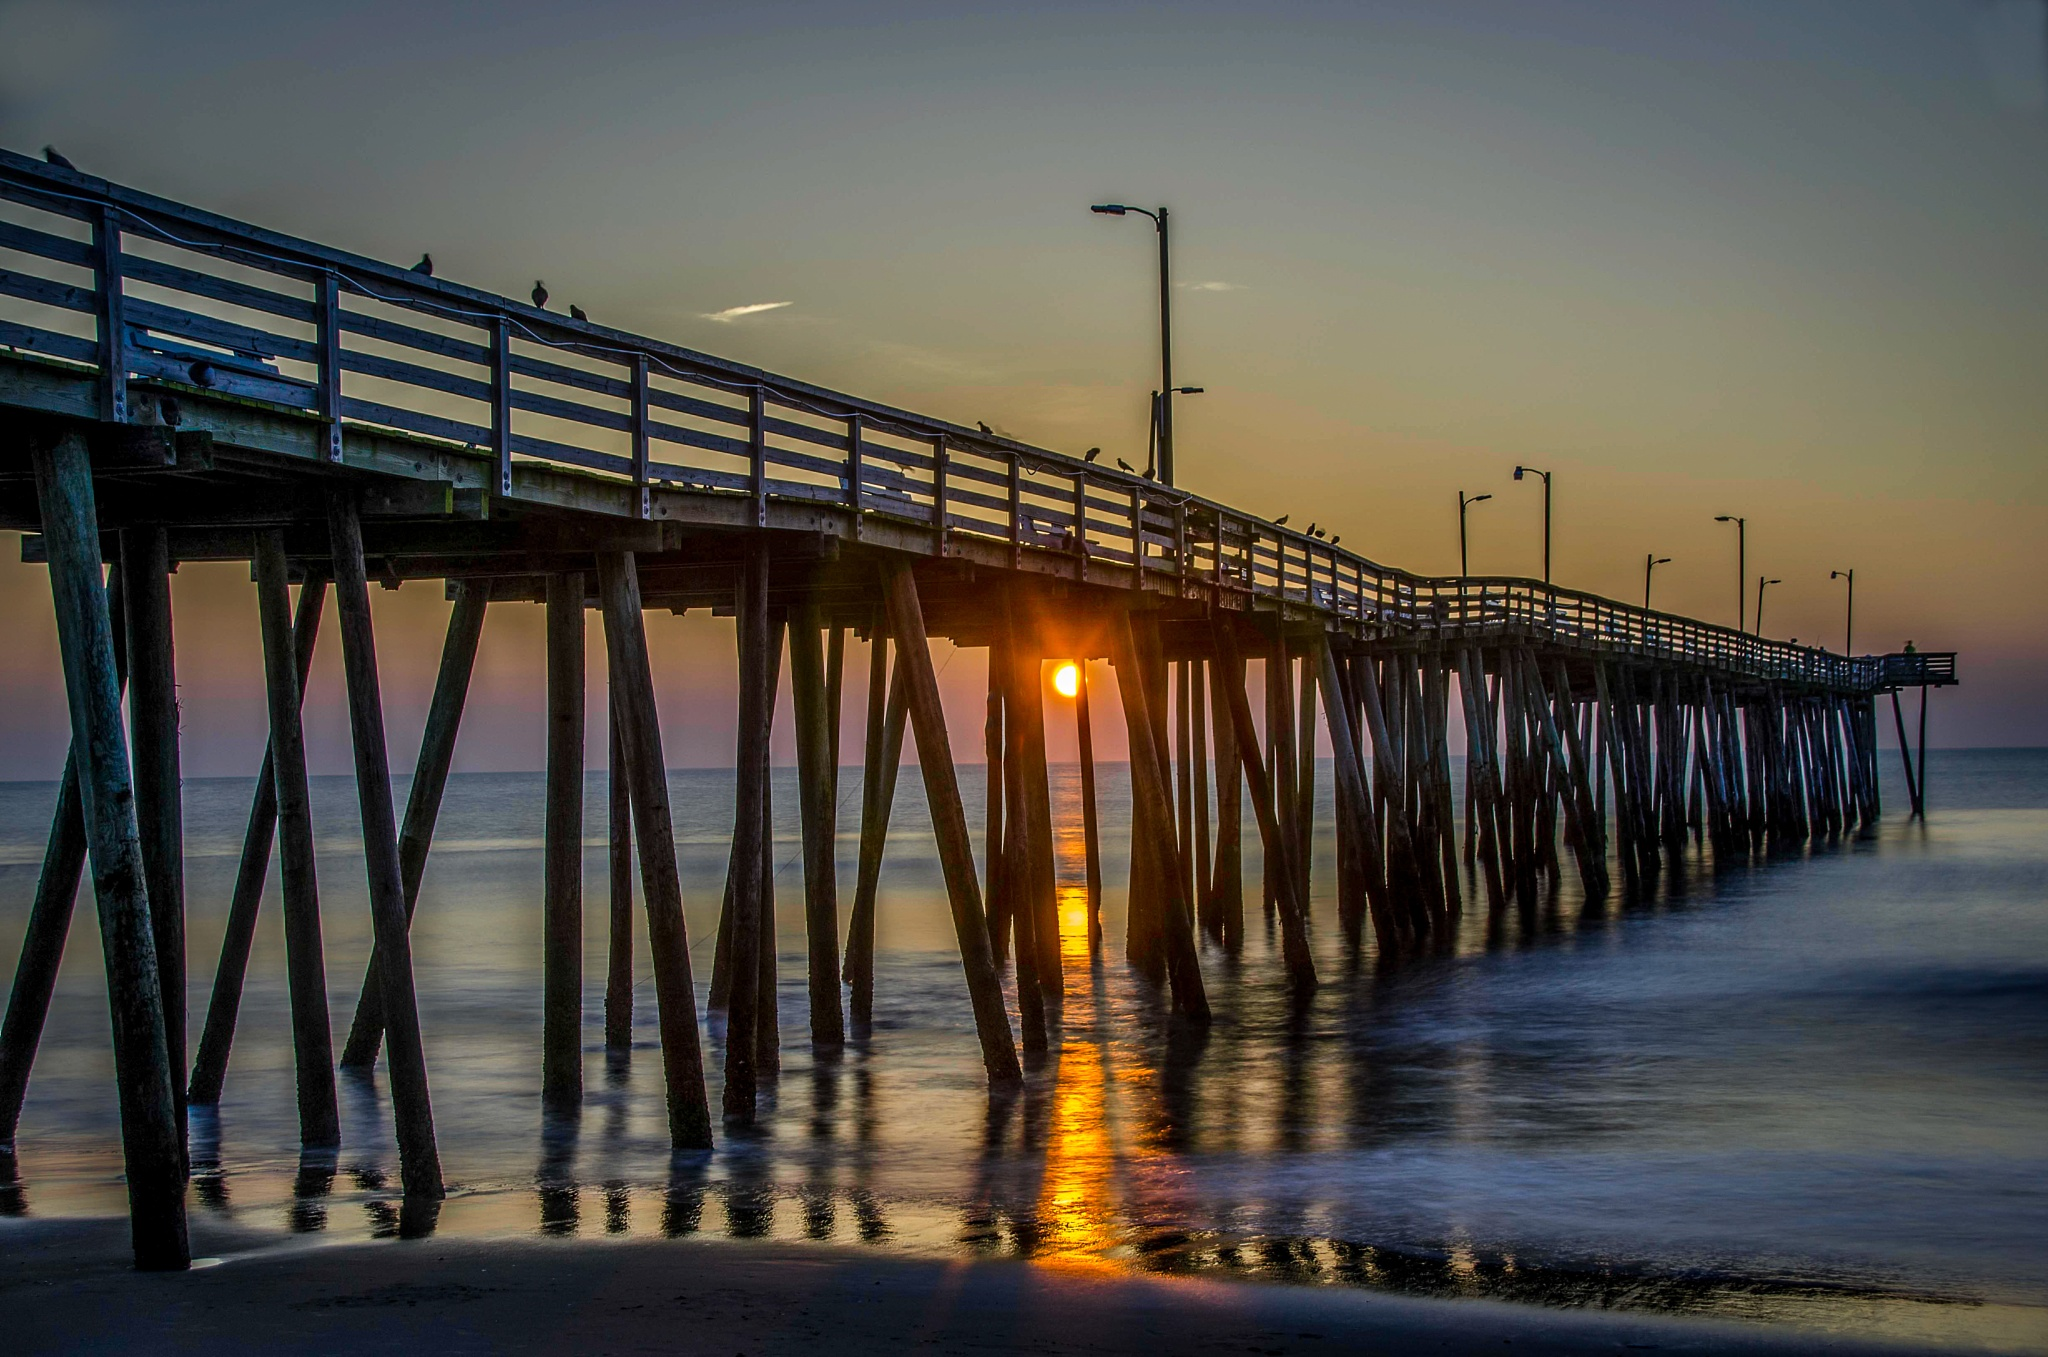 Sunrise under the Pier by CharlieWilson